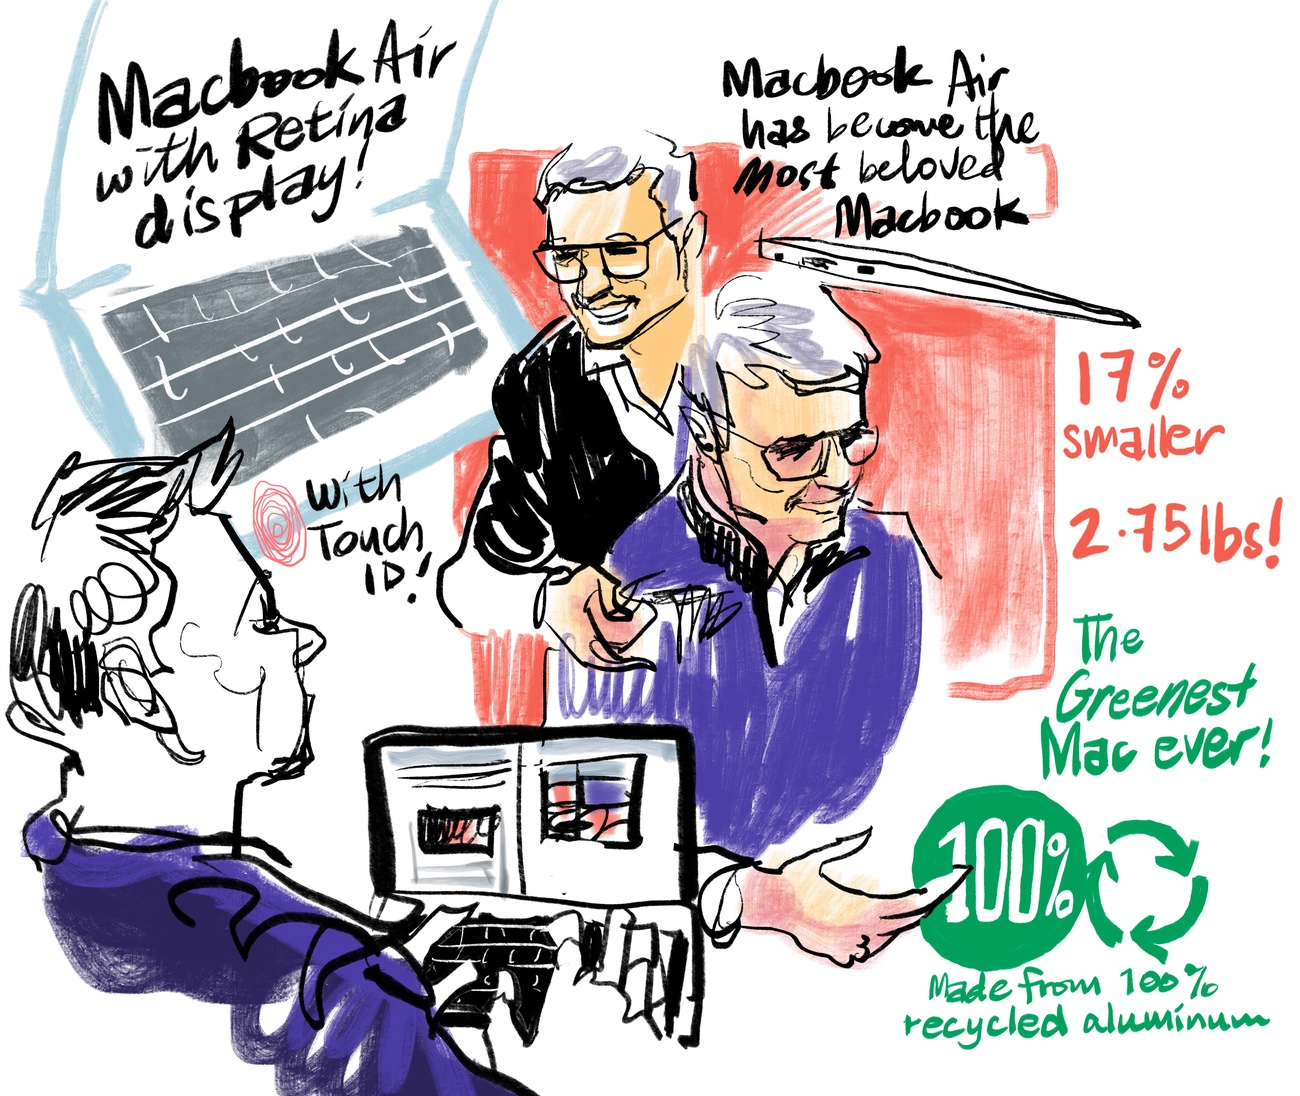 2018-NYC-6-Apple-Tim Cook_Sketcherman.jpg